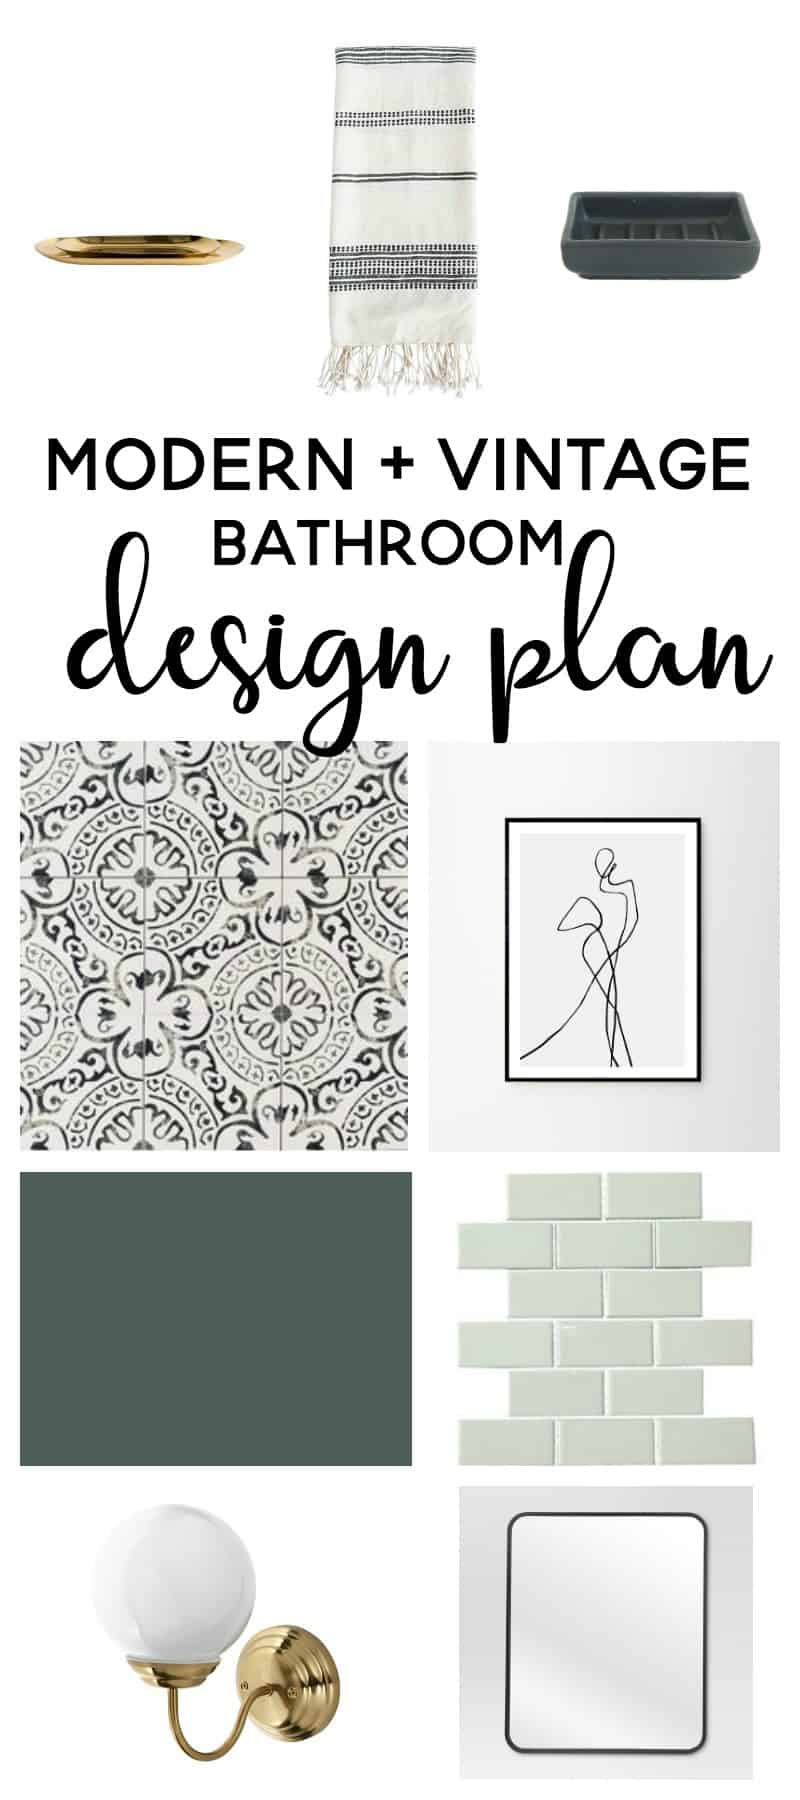 Amazing Modern Vintage Master Bathroom Design Plan | Bathroom Ideas | Bathroom  Remodel | Bathroom Decor |